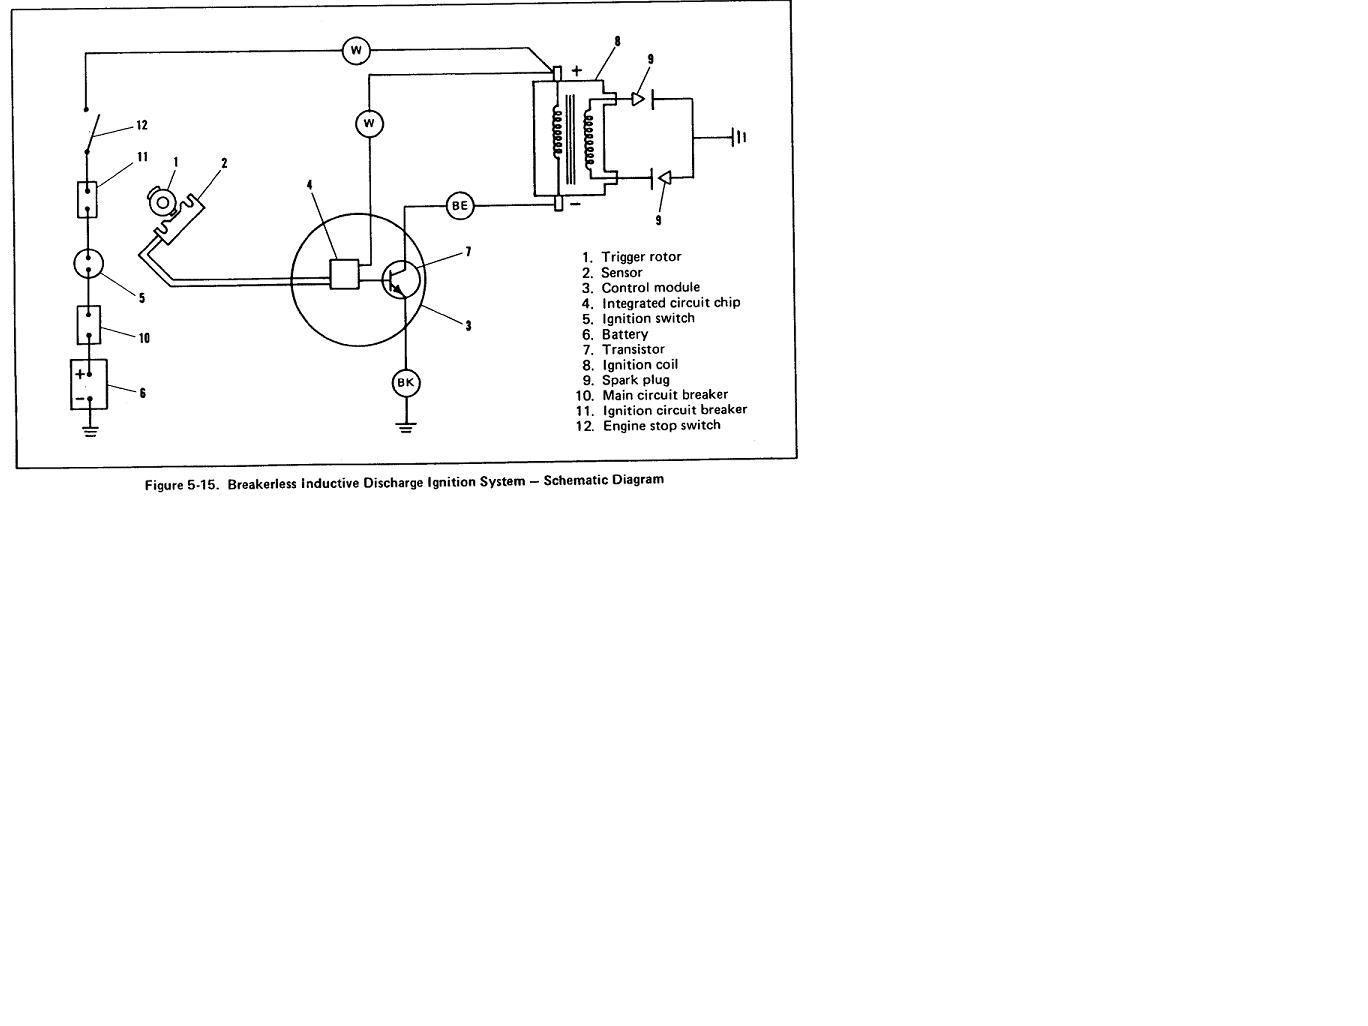 hight resolution of coil ground wire ignition jpg